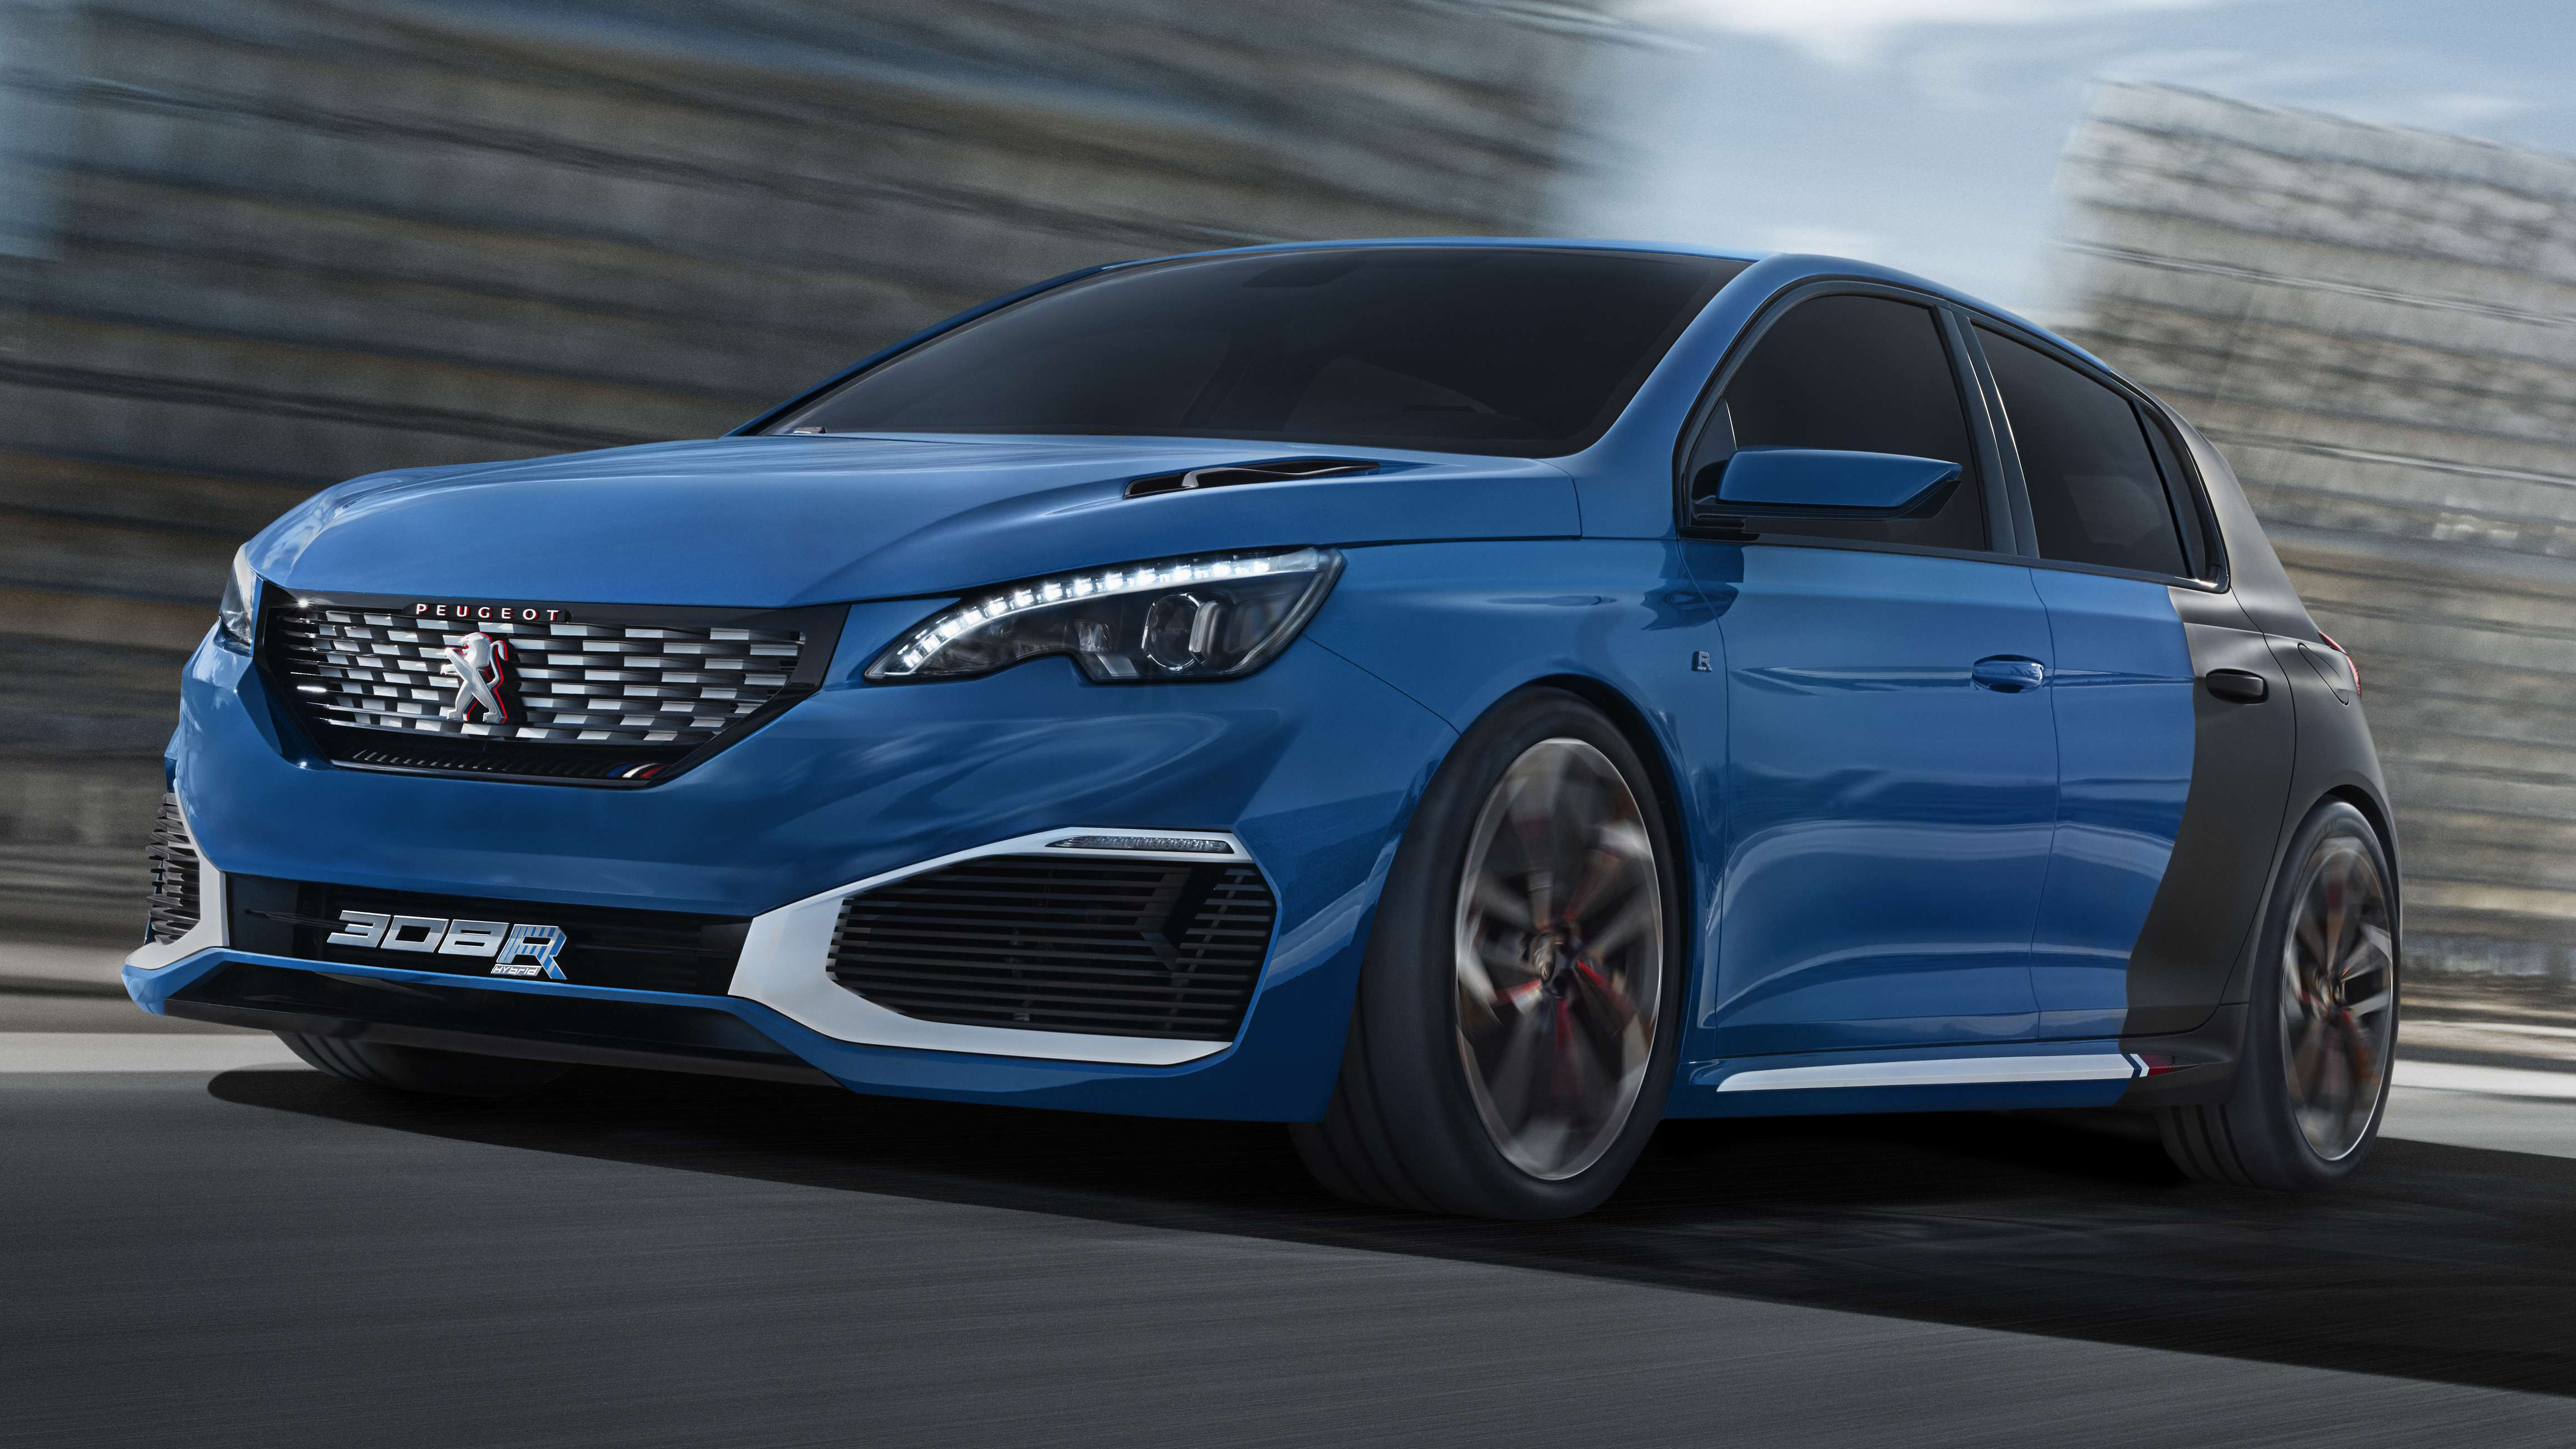 86 New 2020 Peugeot 308 Review